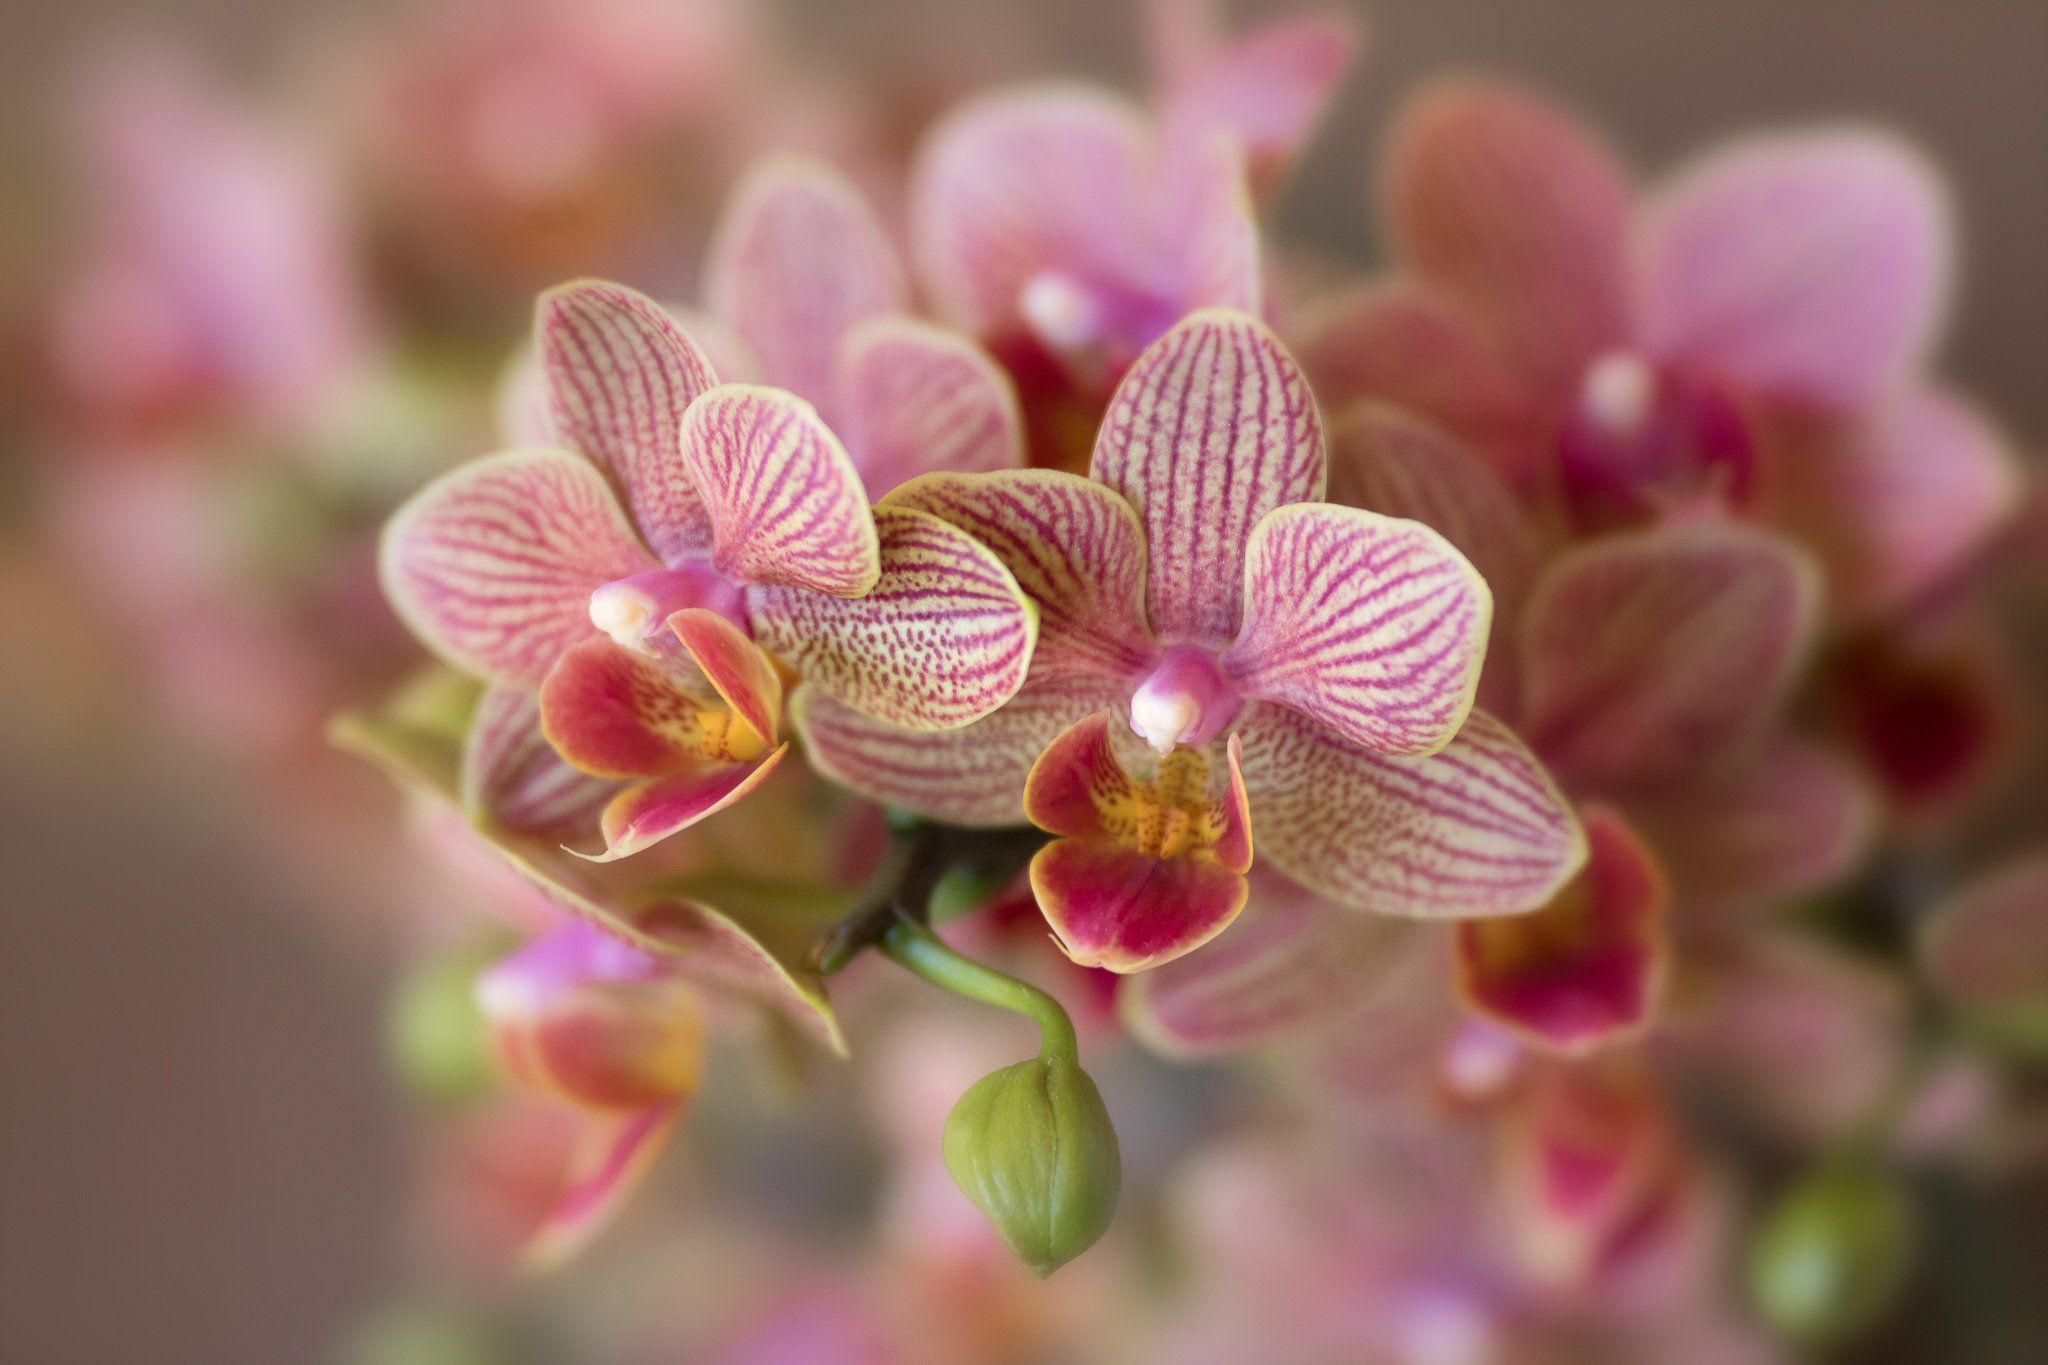 Flower Photography Capturing Stunning Orchid Photos In 2020 Flowers Photography Orchid Photo Orchids